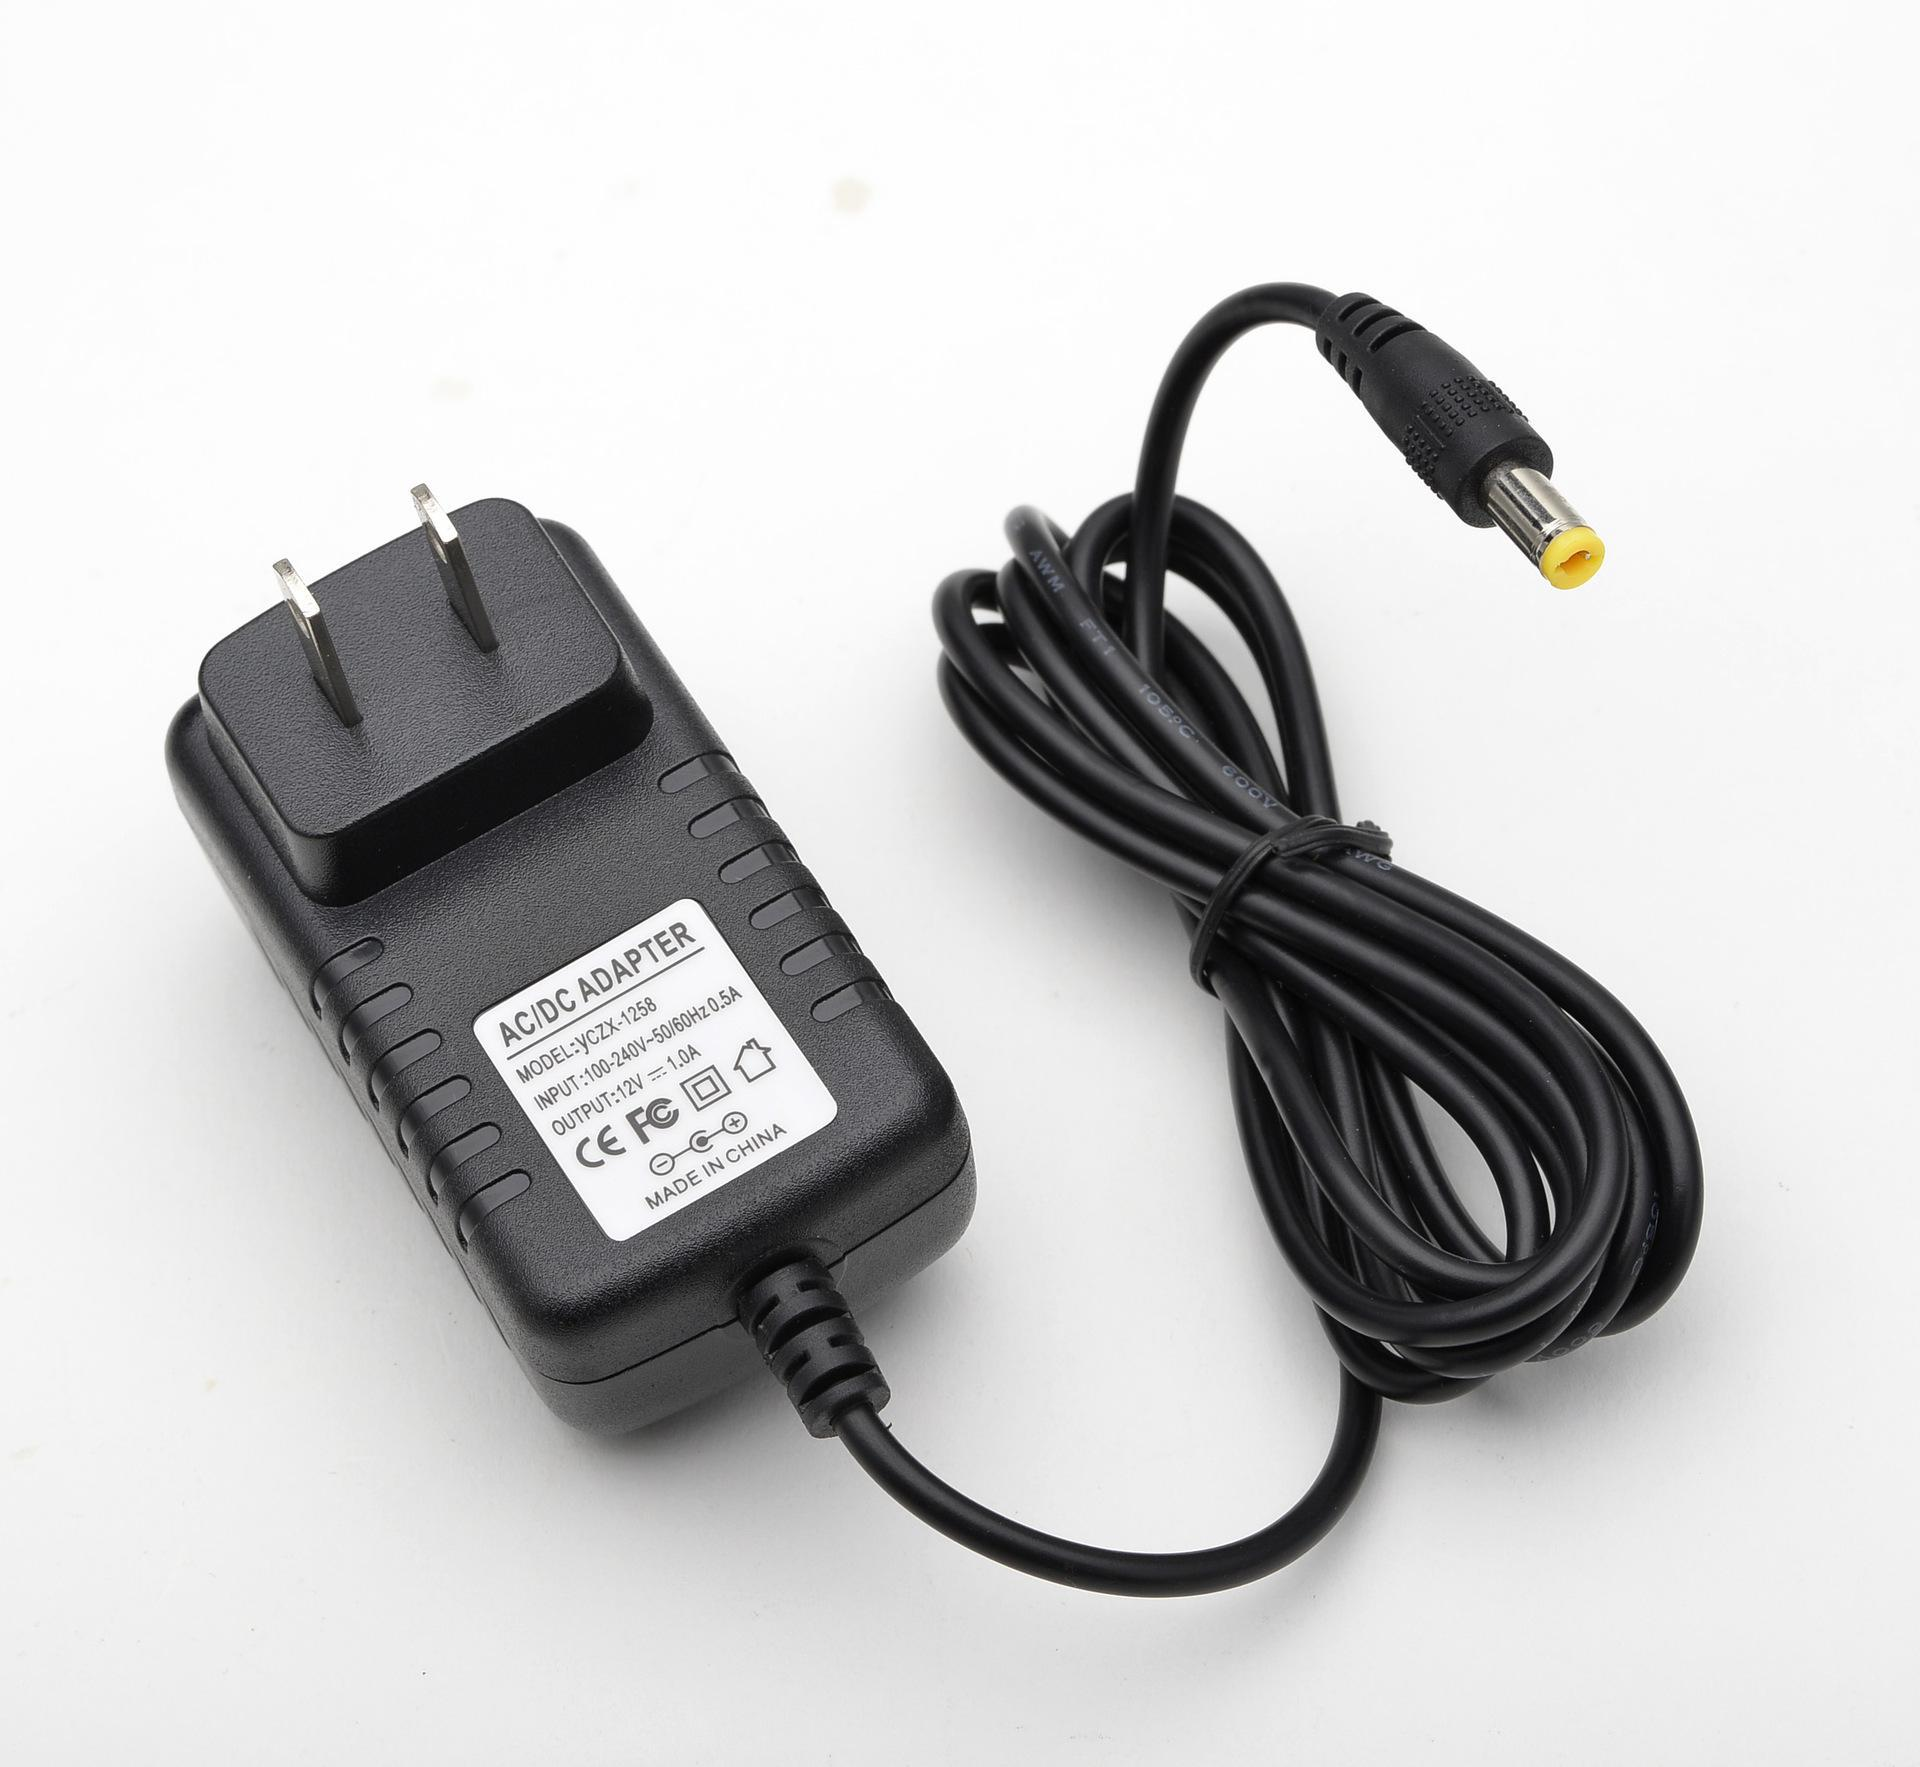 12V 2A AC/DC Adapter Power Supply for Security CCTV DVR Camera US 2pcs 12v 1a dc switch power supply adapter us plug 1000ma 12v 1a for cctv camera